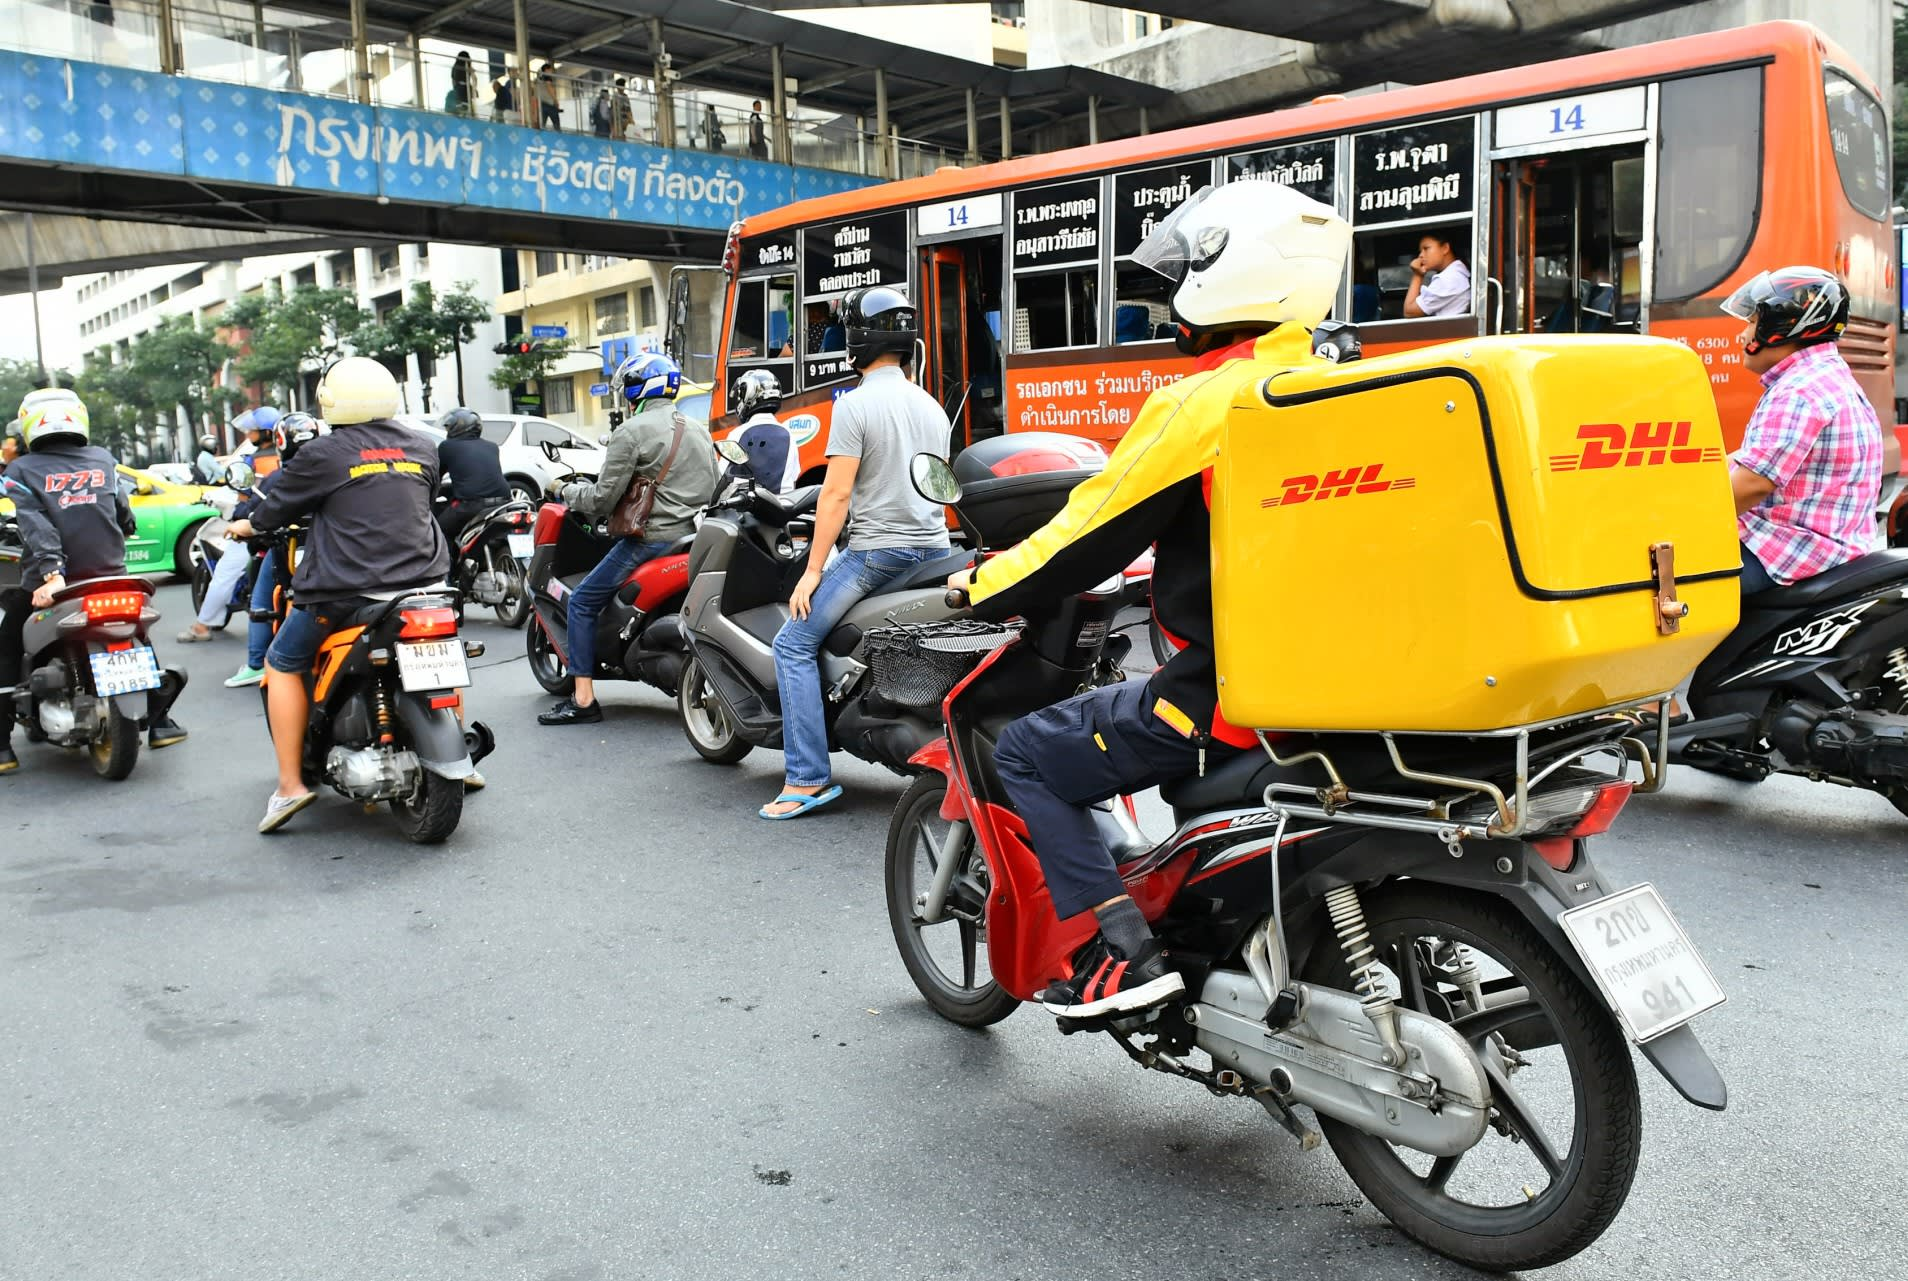 DHL has quickly built up its presence in Thailand. | Nikkei Asian Review